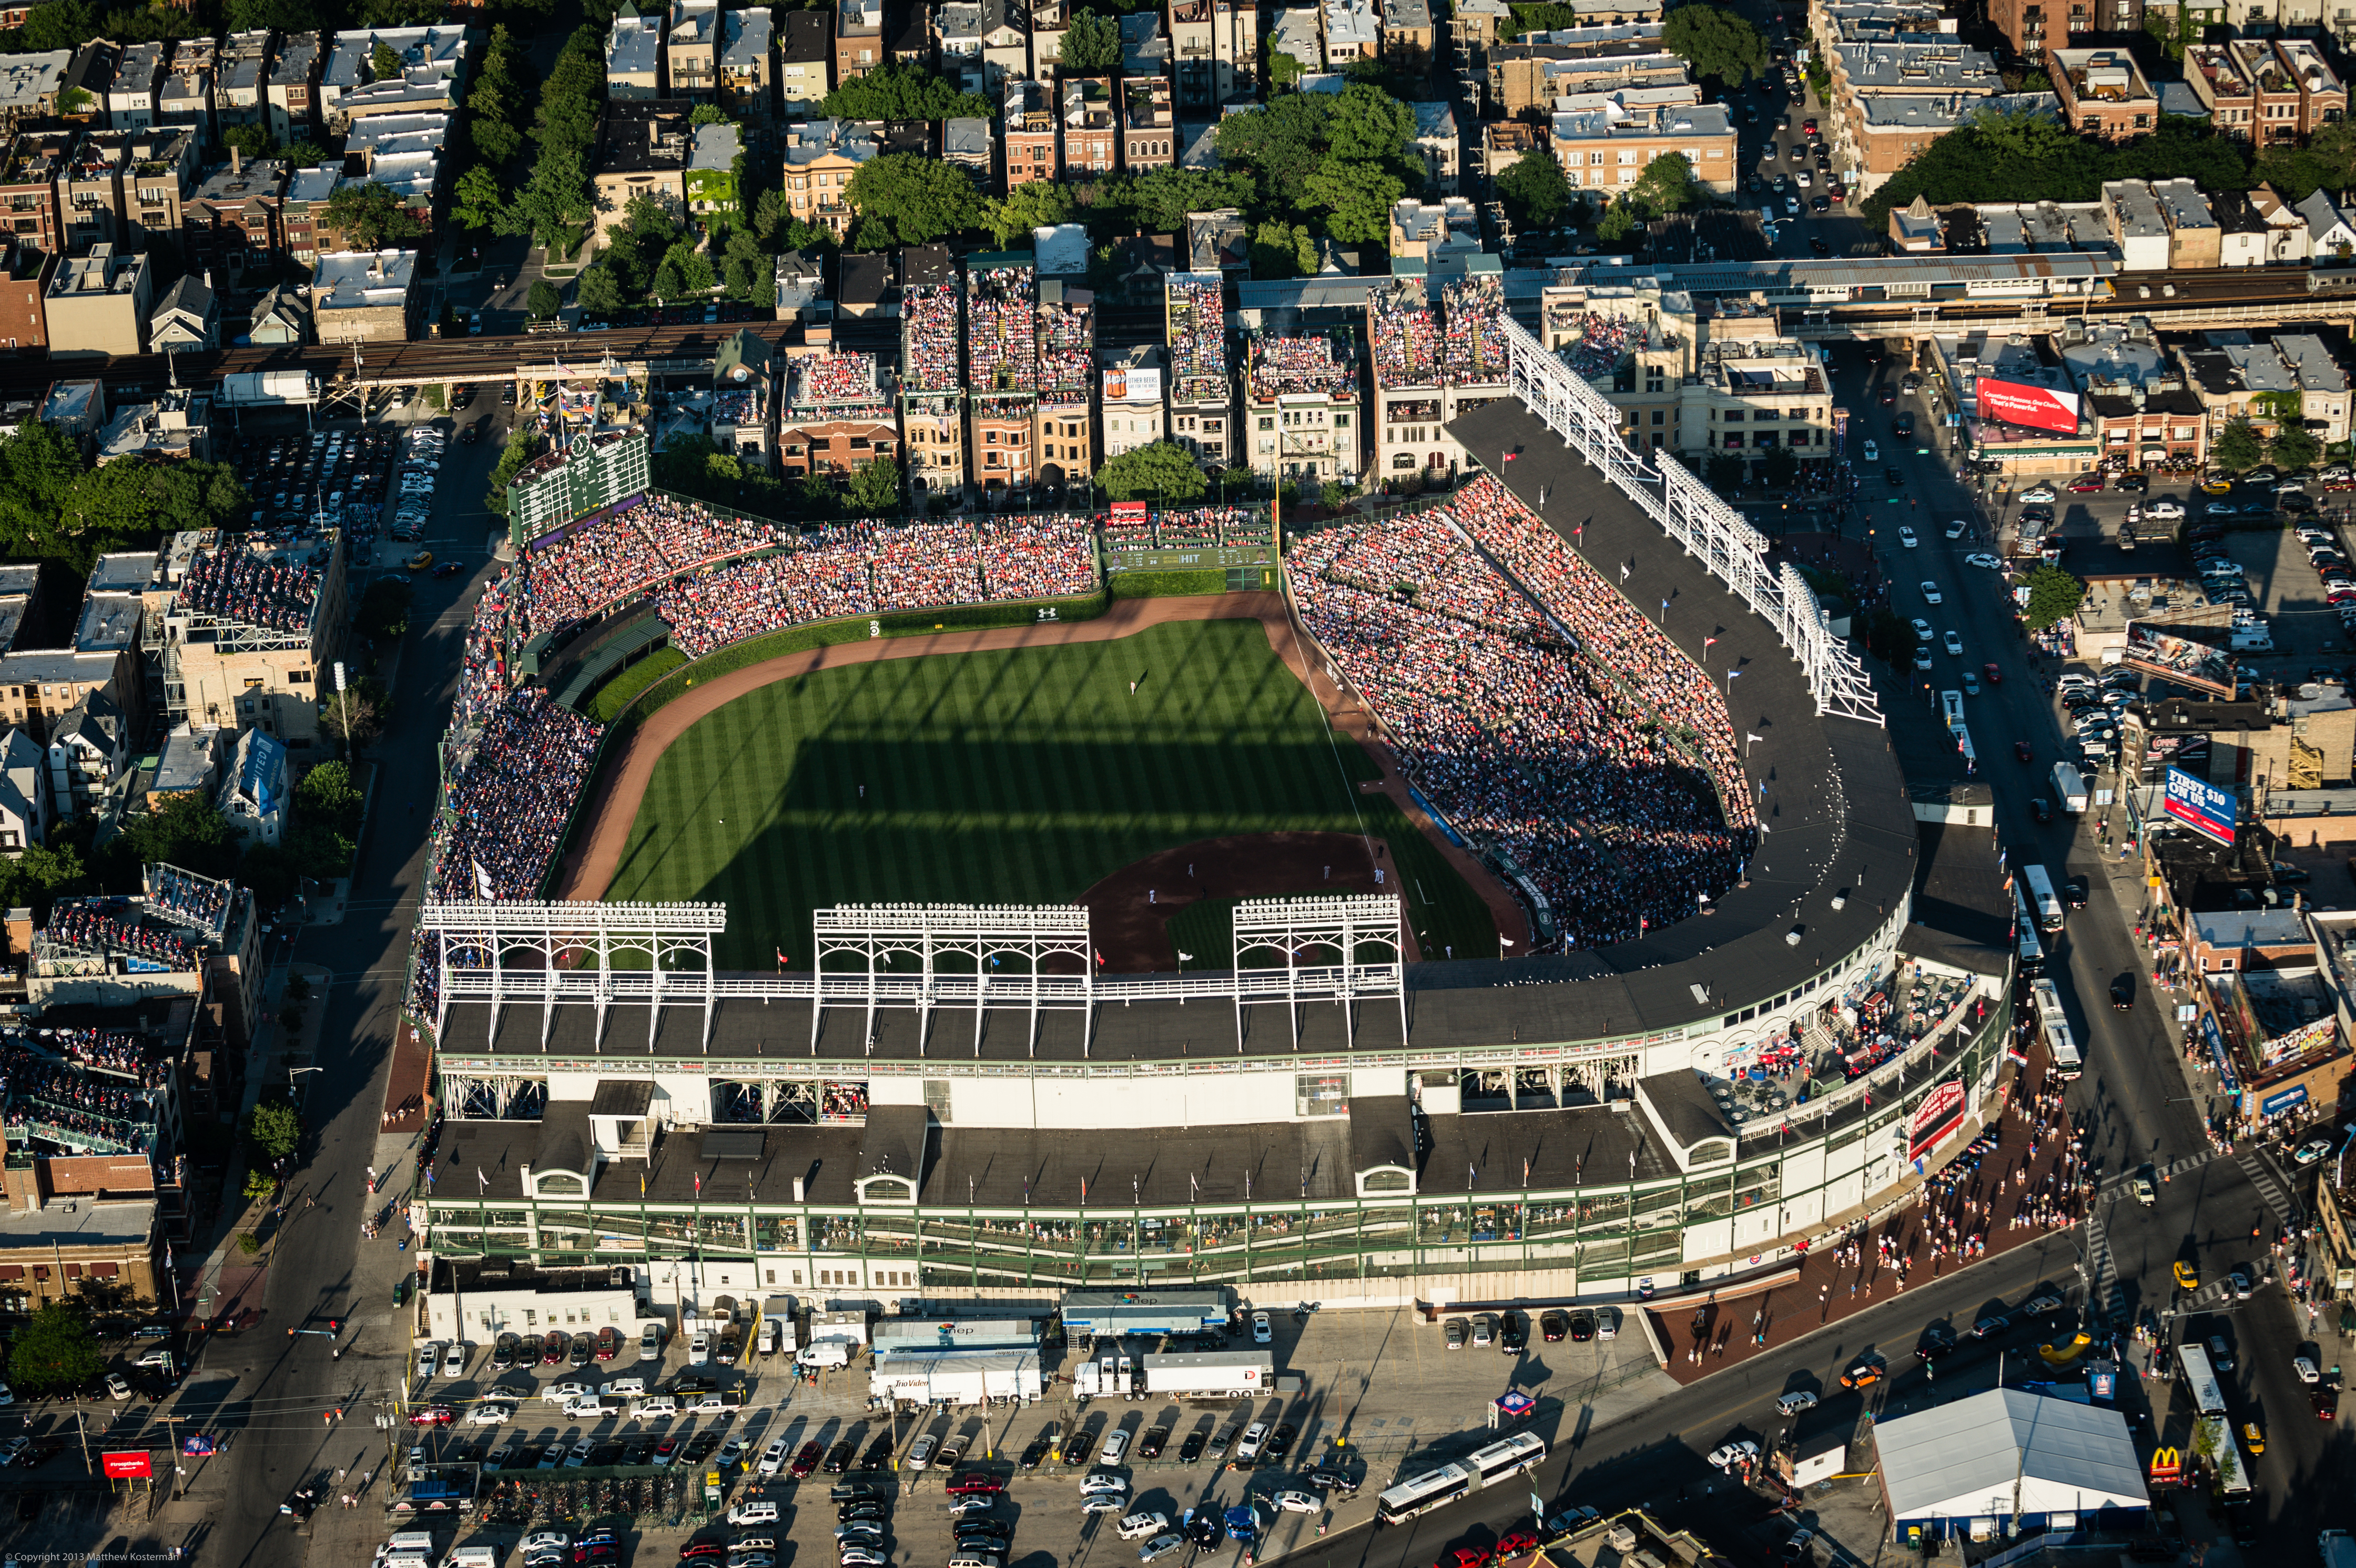 Wrigley Field as seen from the air, July 11, 2013